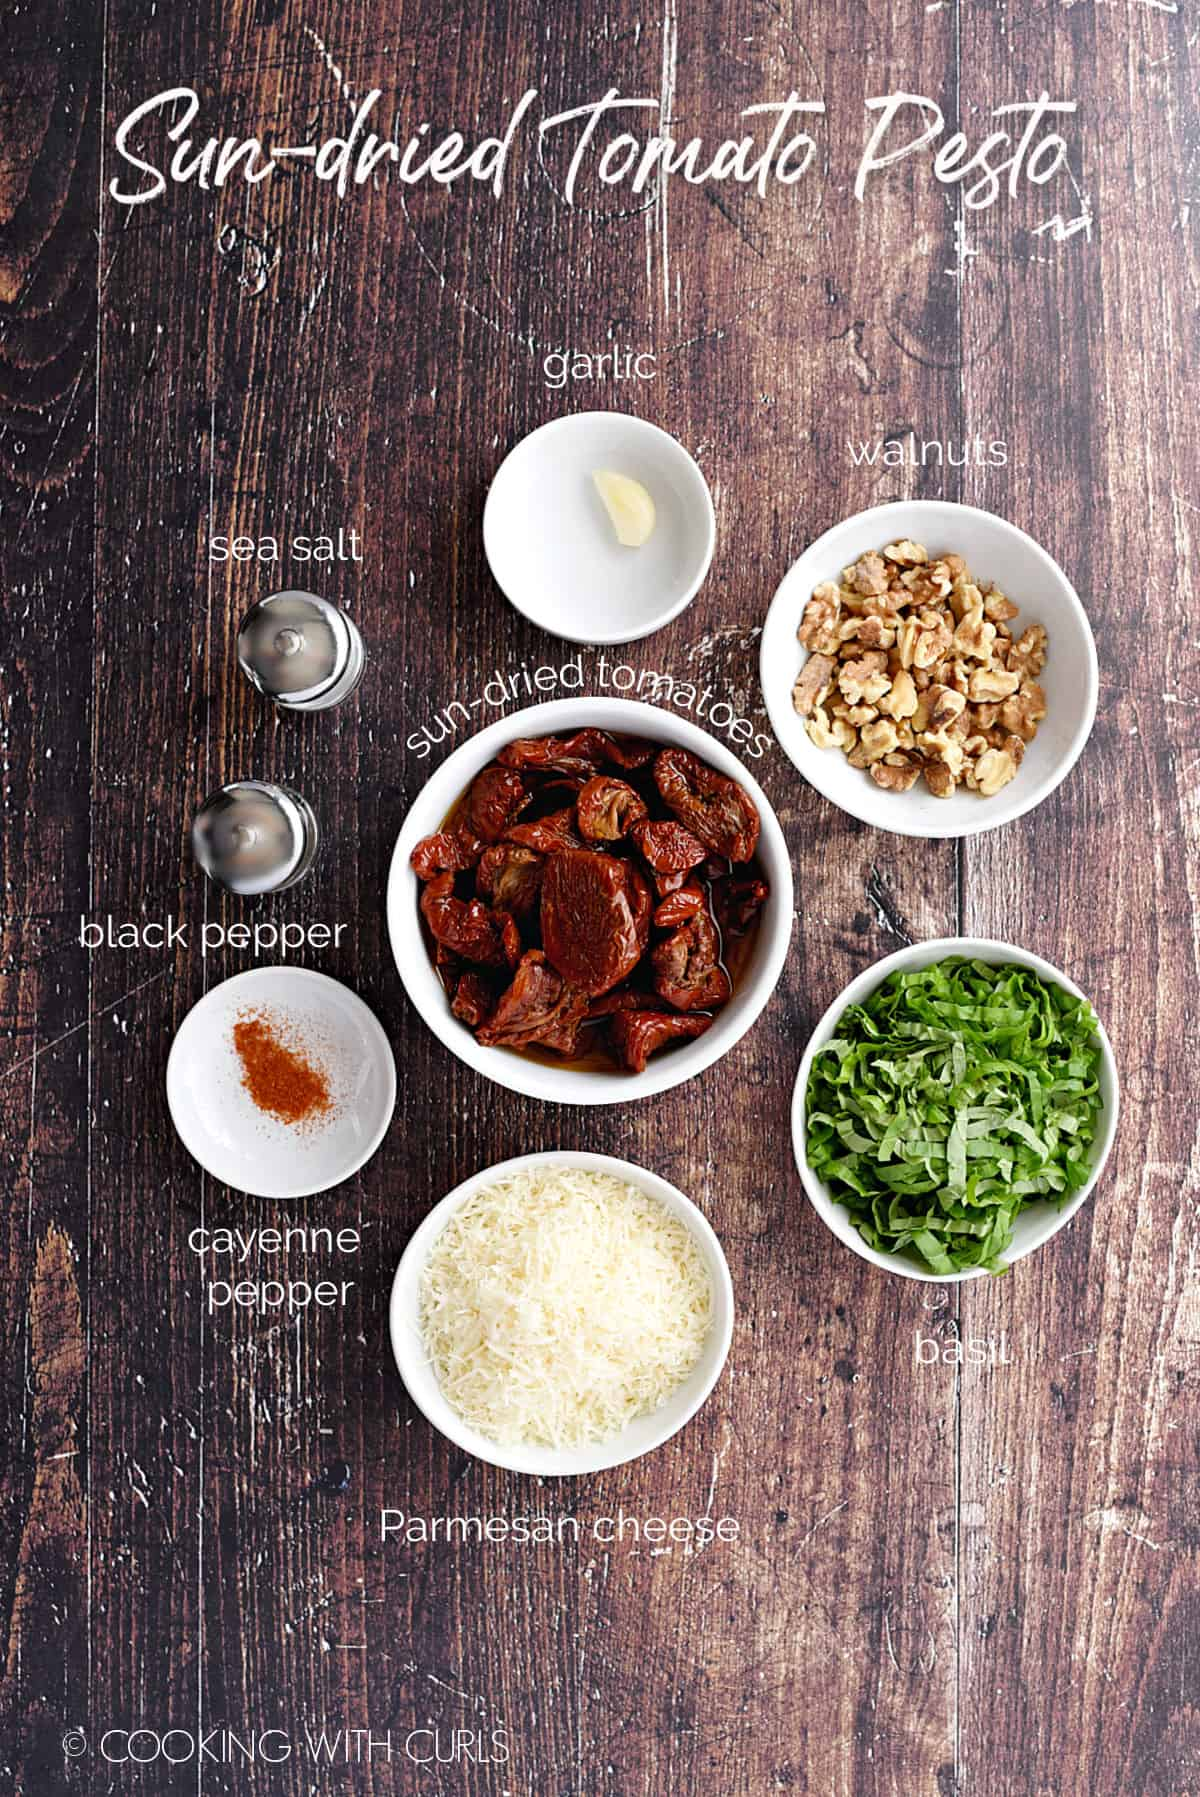 Sun-dried Tomato Pesto ingredients in small white bowls; garlic, walnuts, basil, parmesan cheese, sun-dried tomatoes, cayenne, salt, pepper.